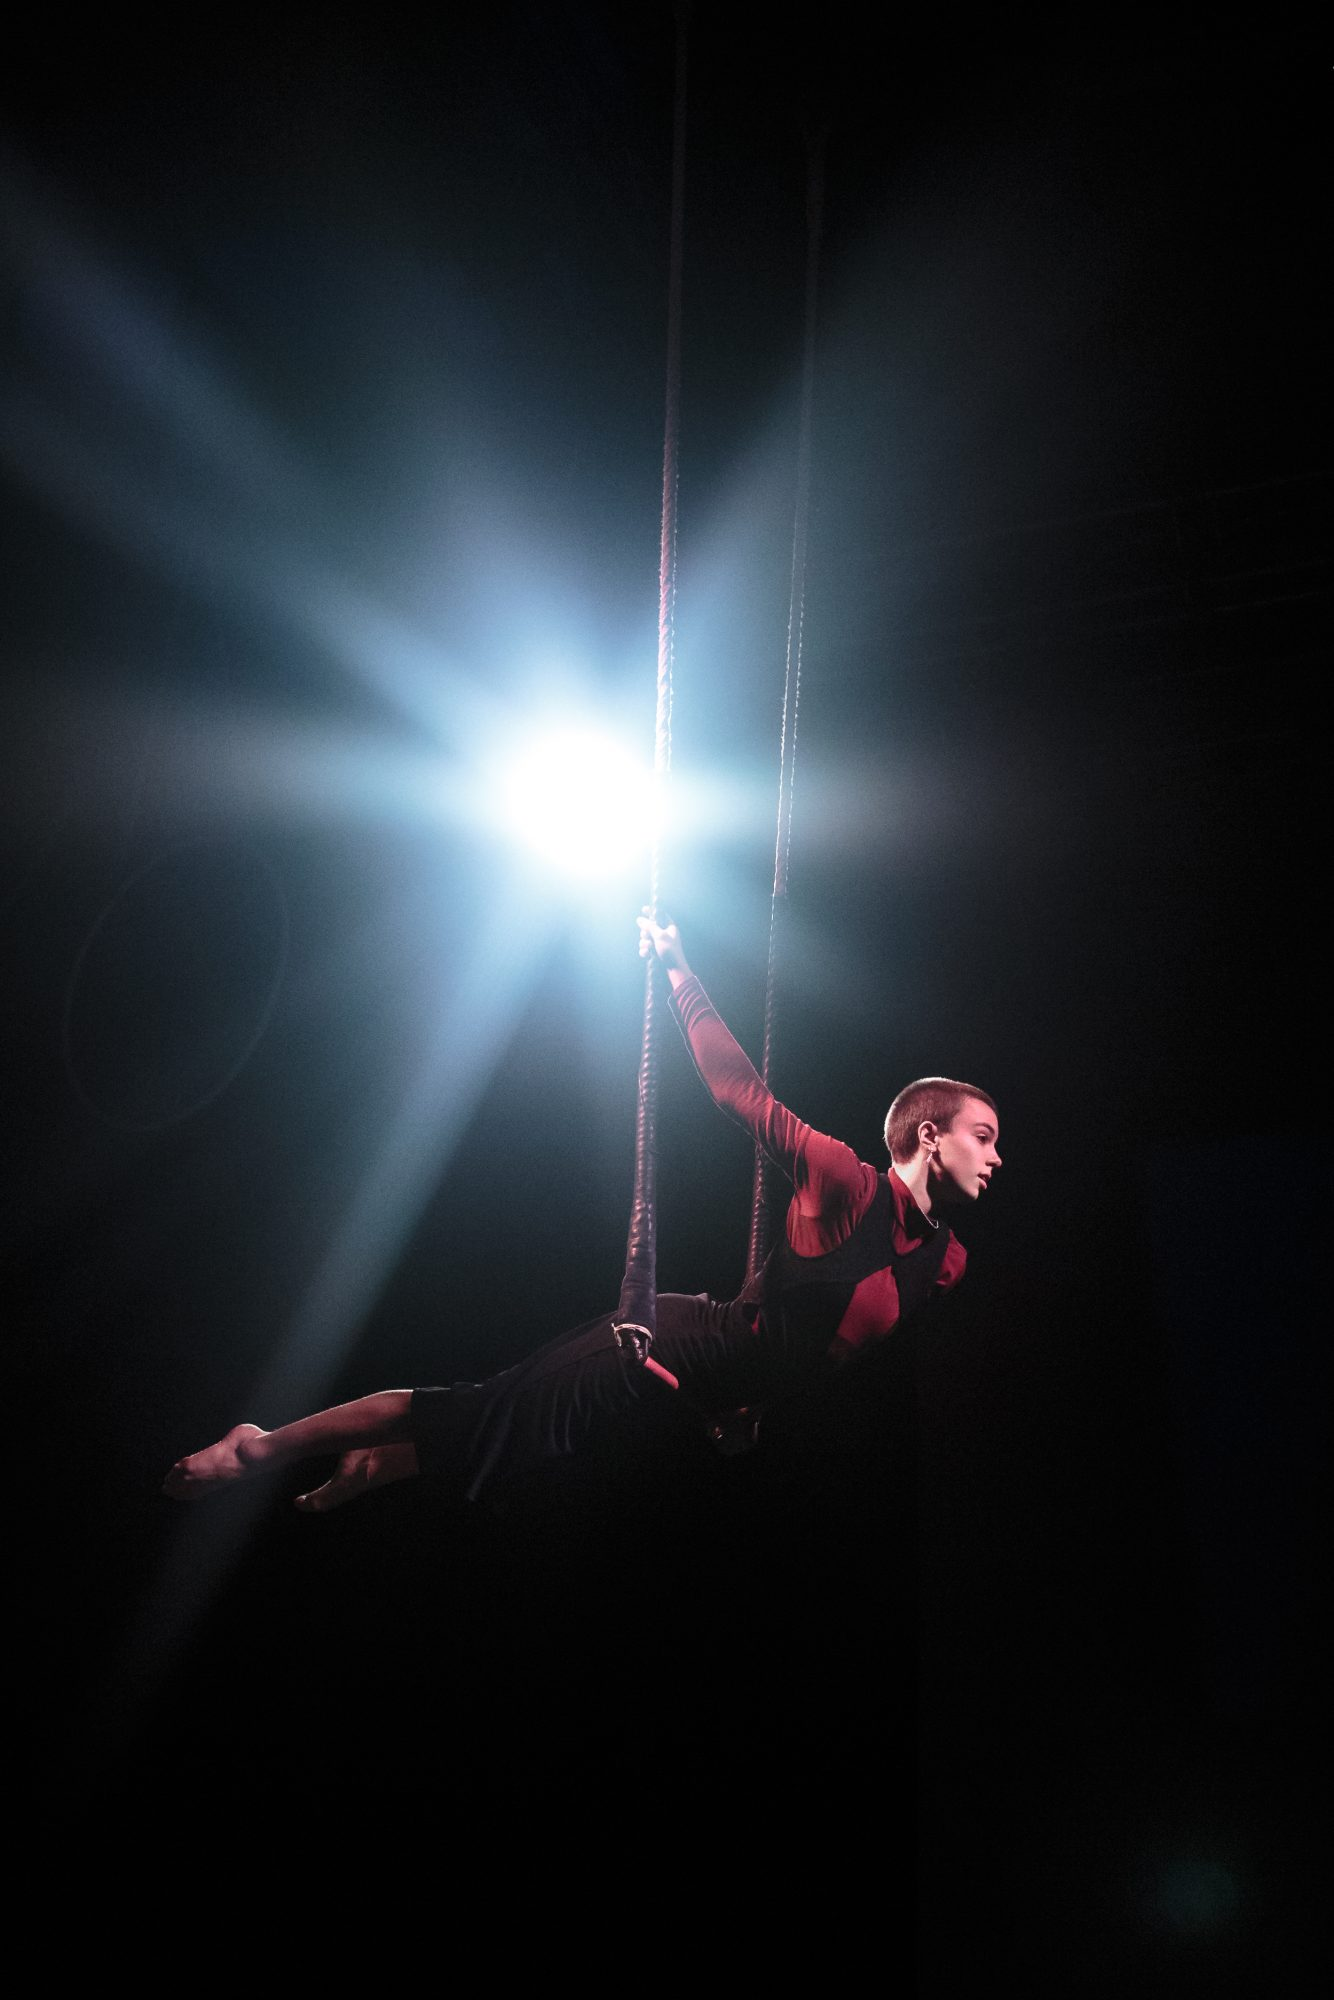 Performance of becoming: One member balances on a trapeze with legs pointed straight and arms raised above head. A bright light behind illuminates the performer.